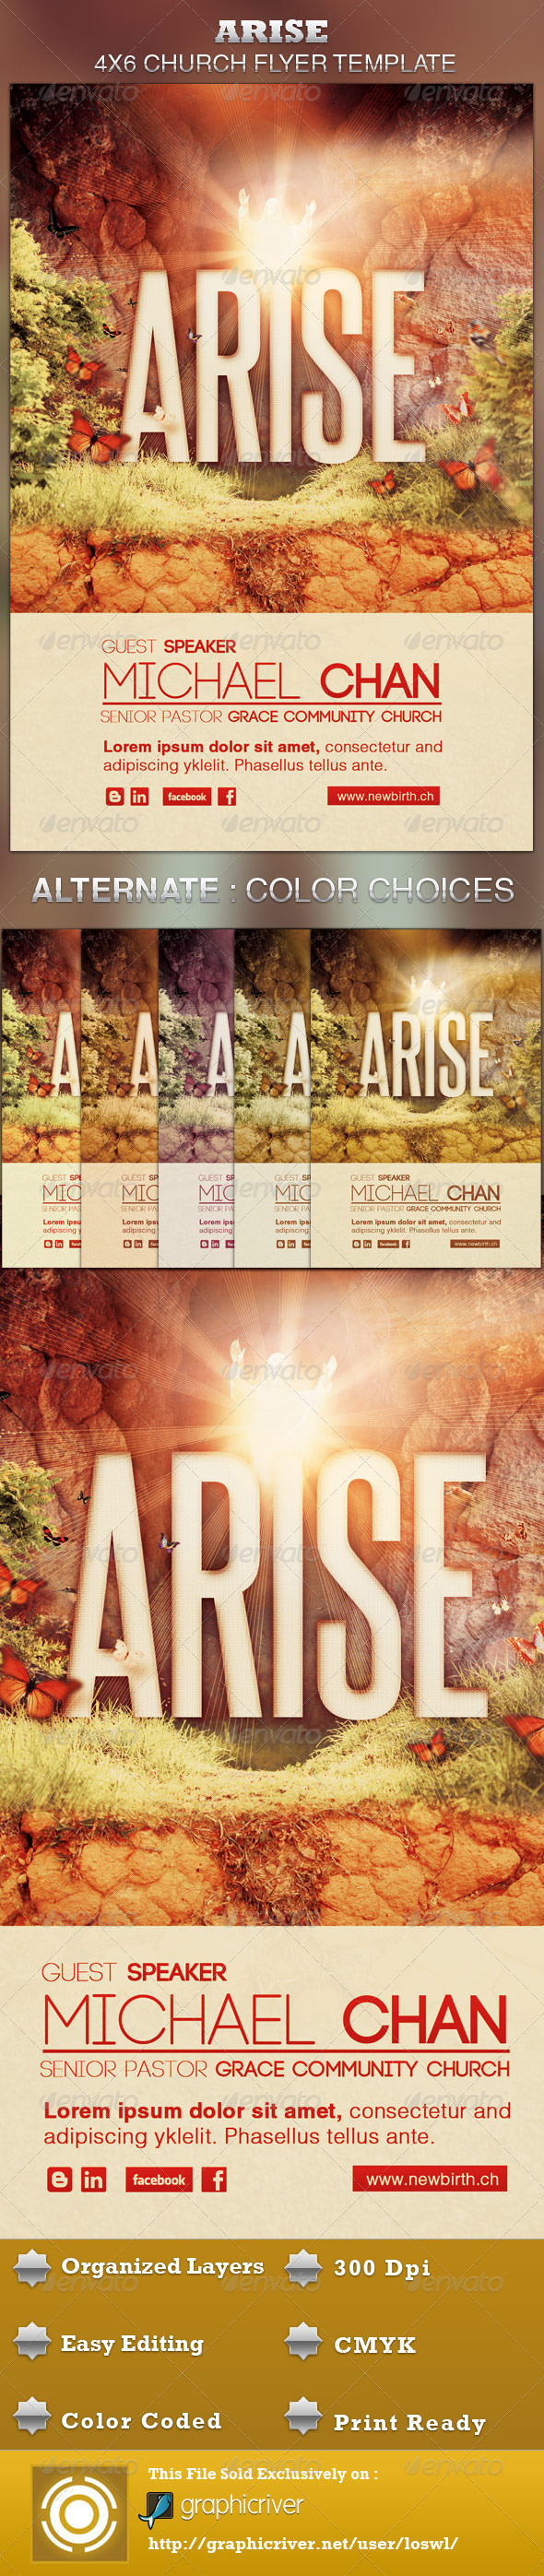 Arise Church Flyer Template - Church Flyers